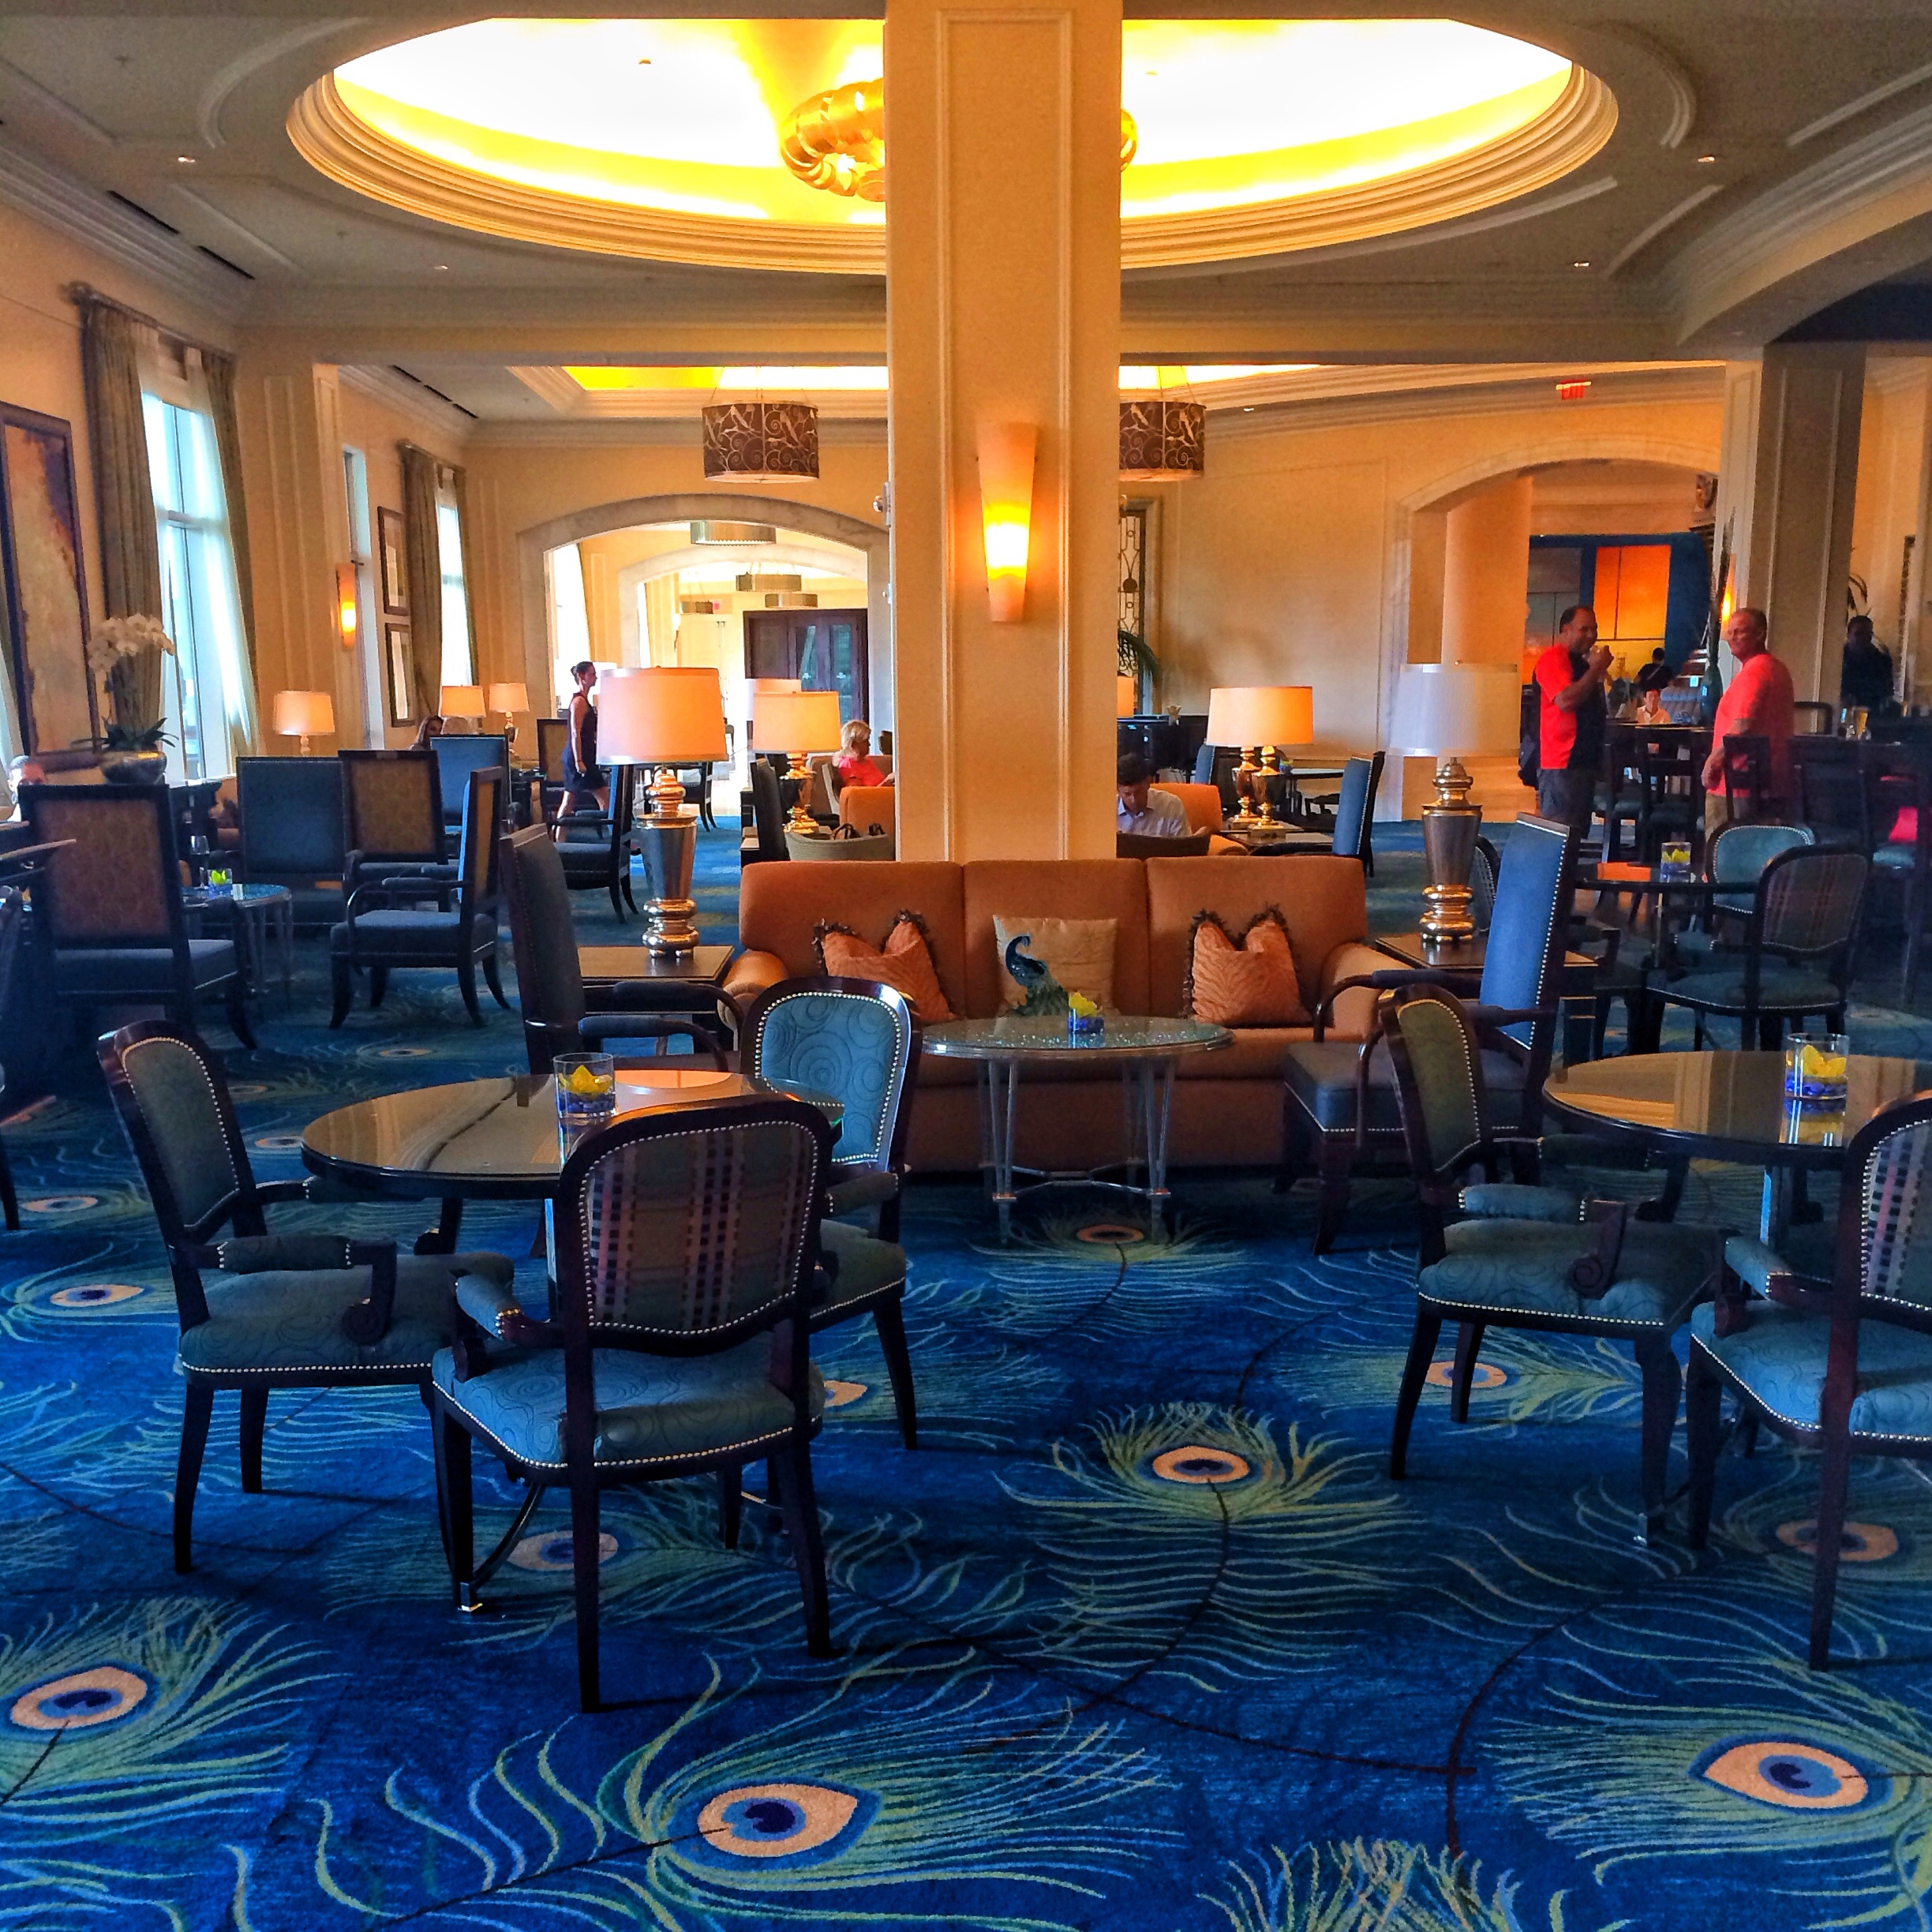 Review of Our Royal Tea Experience at the Waldorf Astoria Orlando